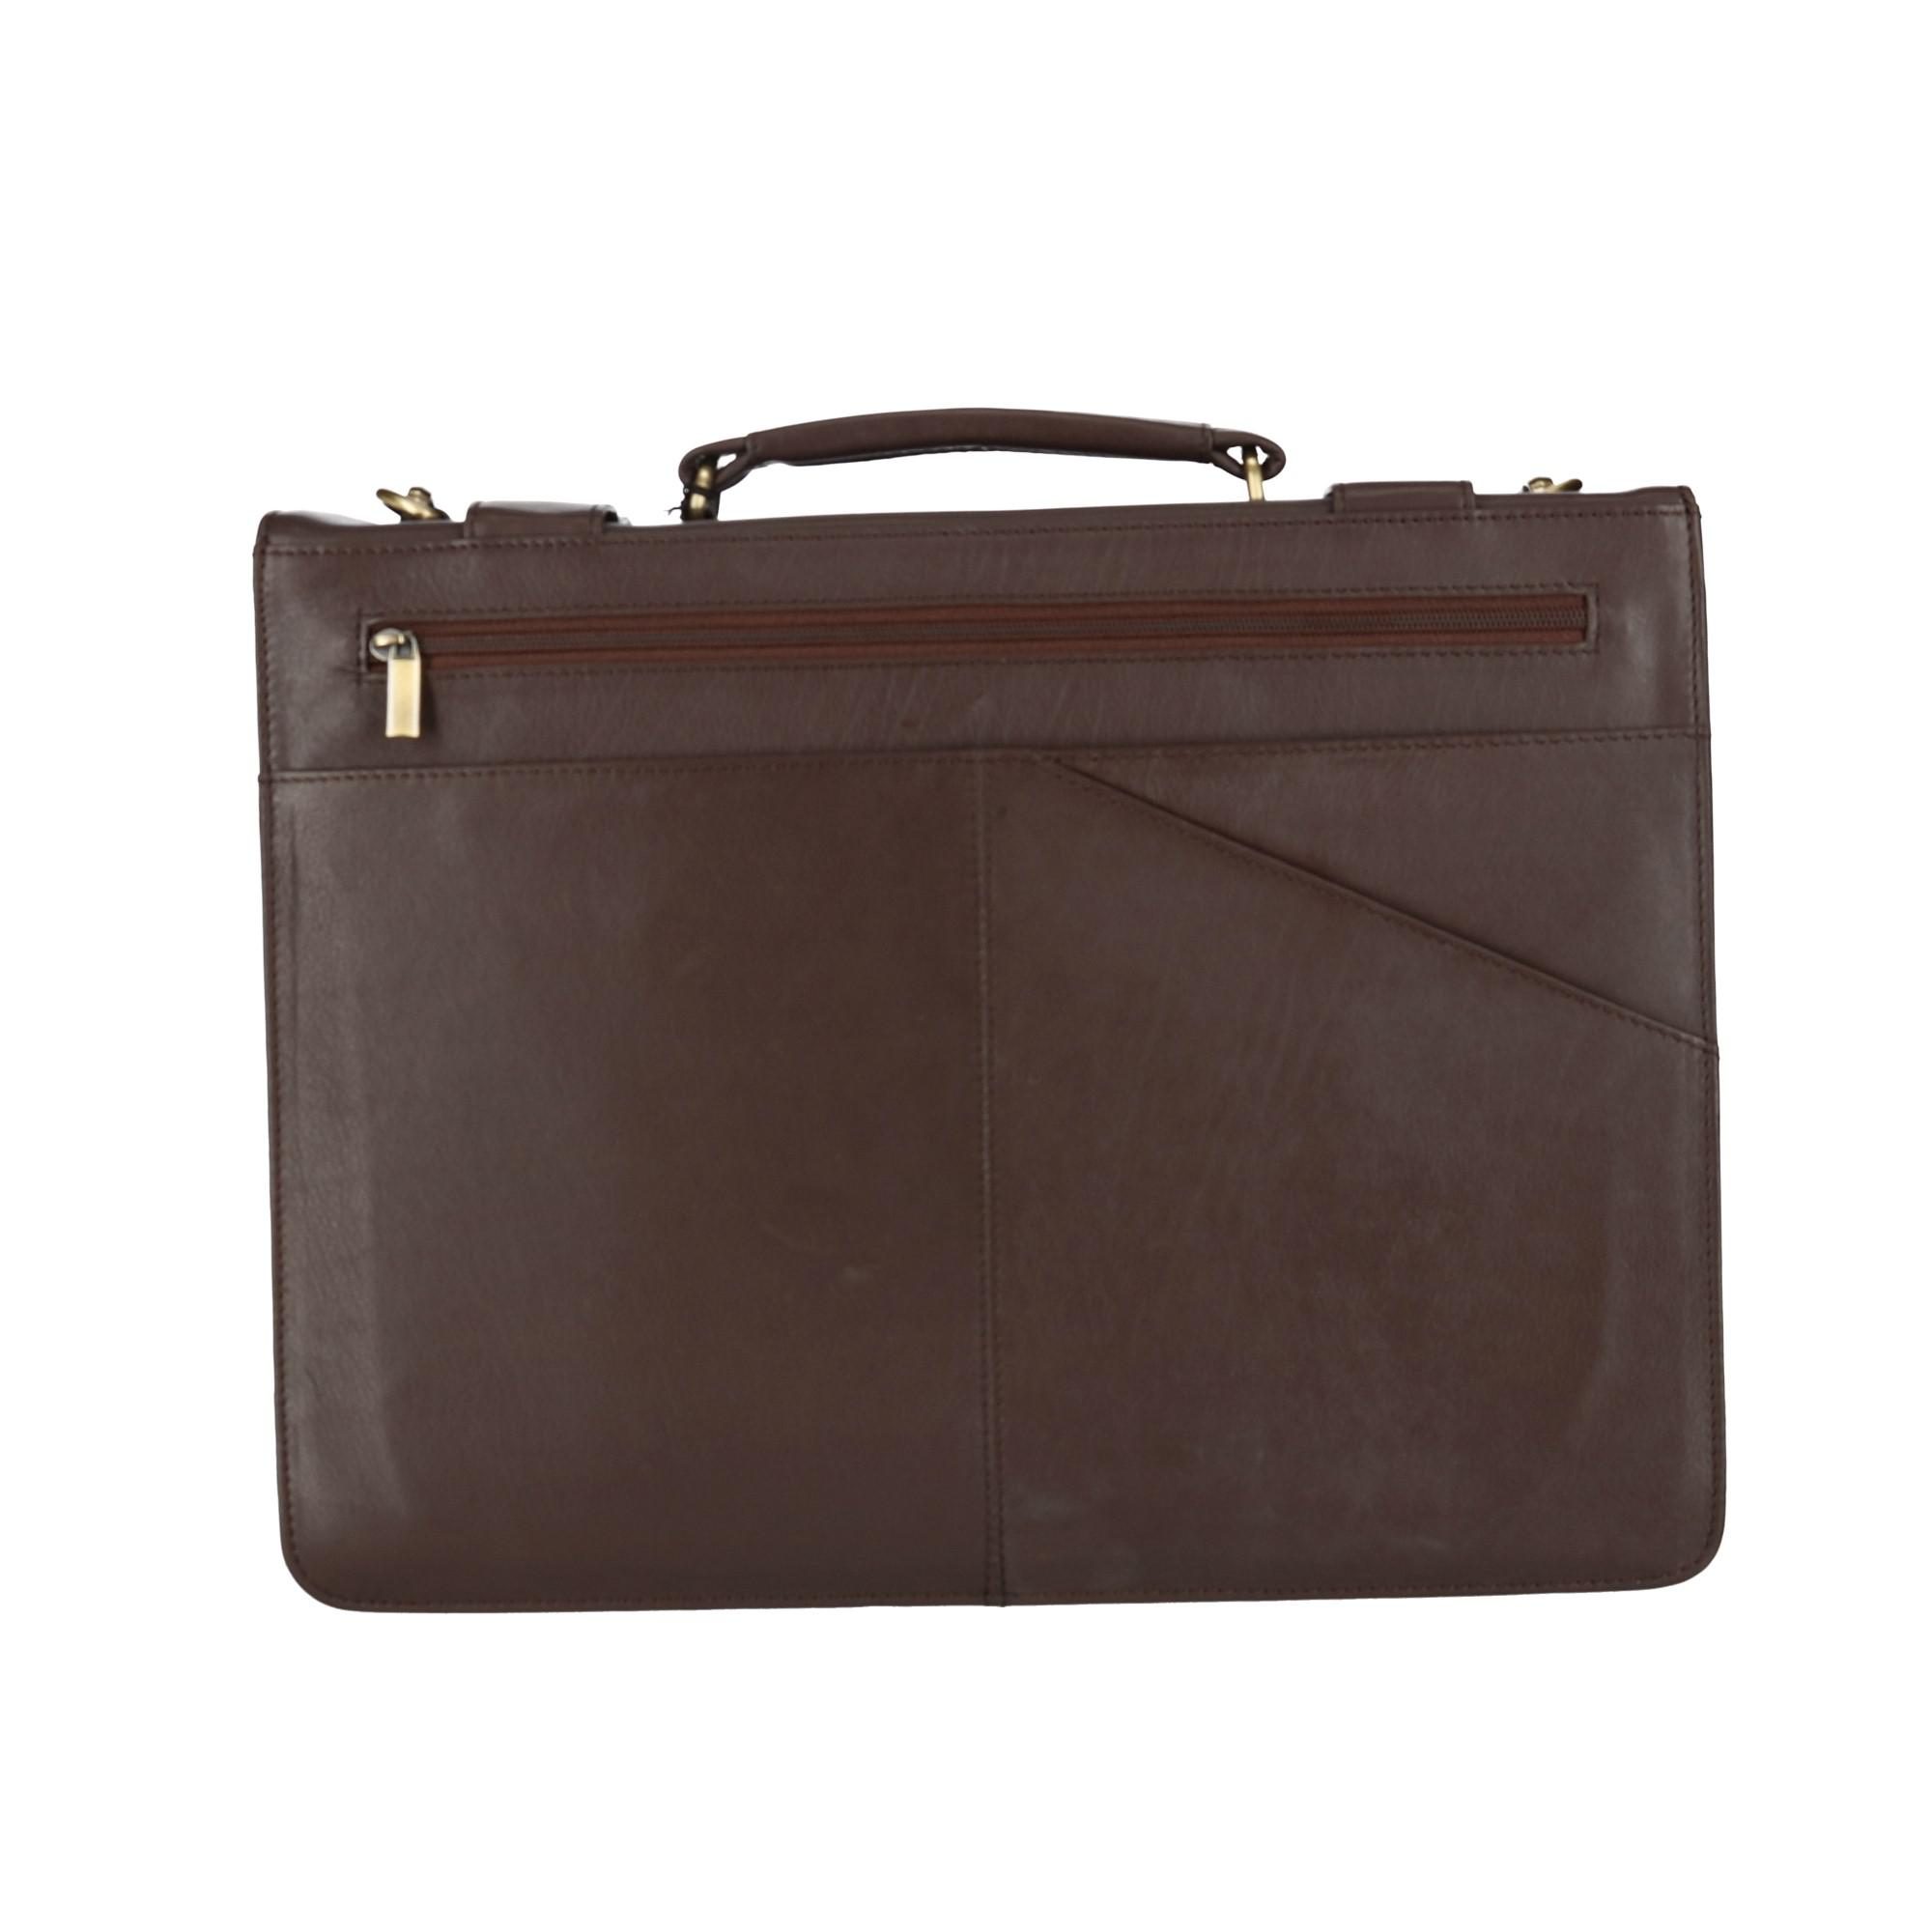 8869d0af3e42 Details about New CTM Men's Classic Leather Briefcase with Laptop  Compartment